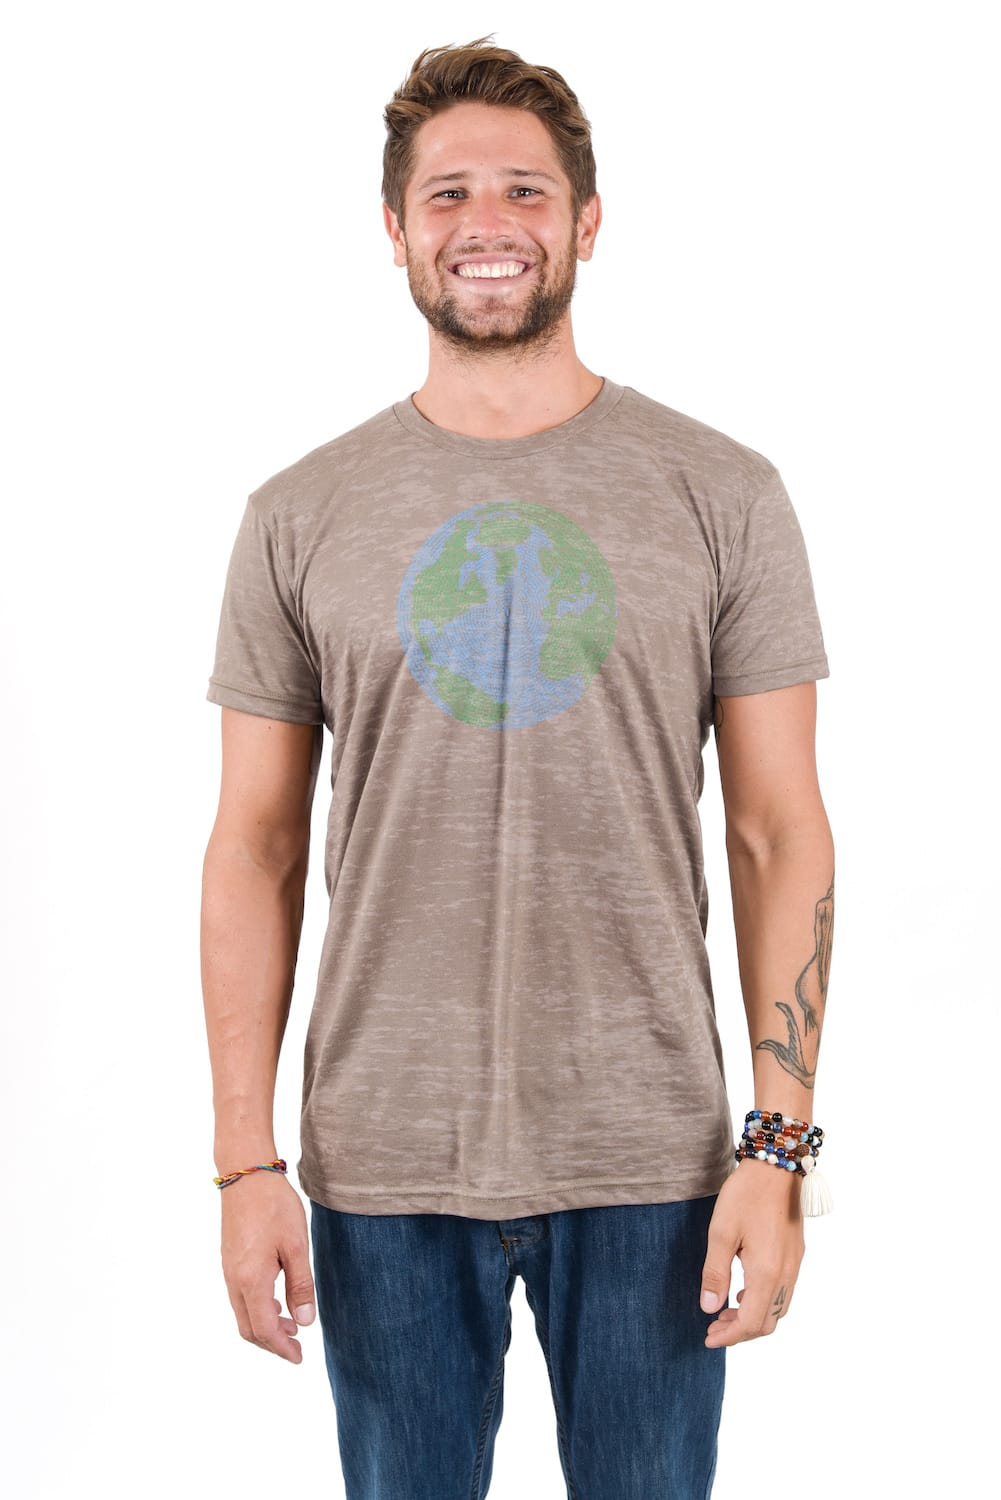 earth-mens_burnout_crew_neck_t-shirt_earth_brown-1-Think_Positive_Apparel-269